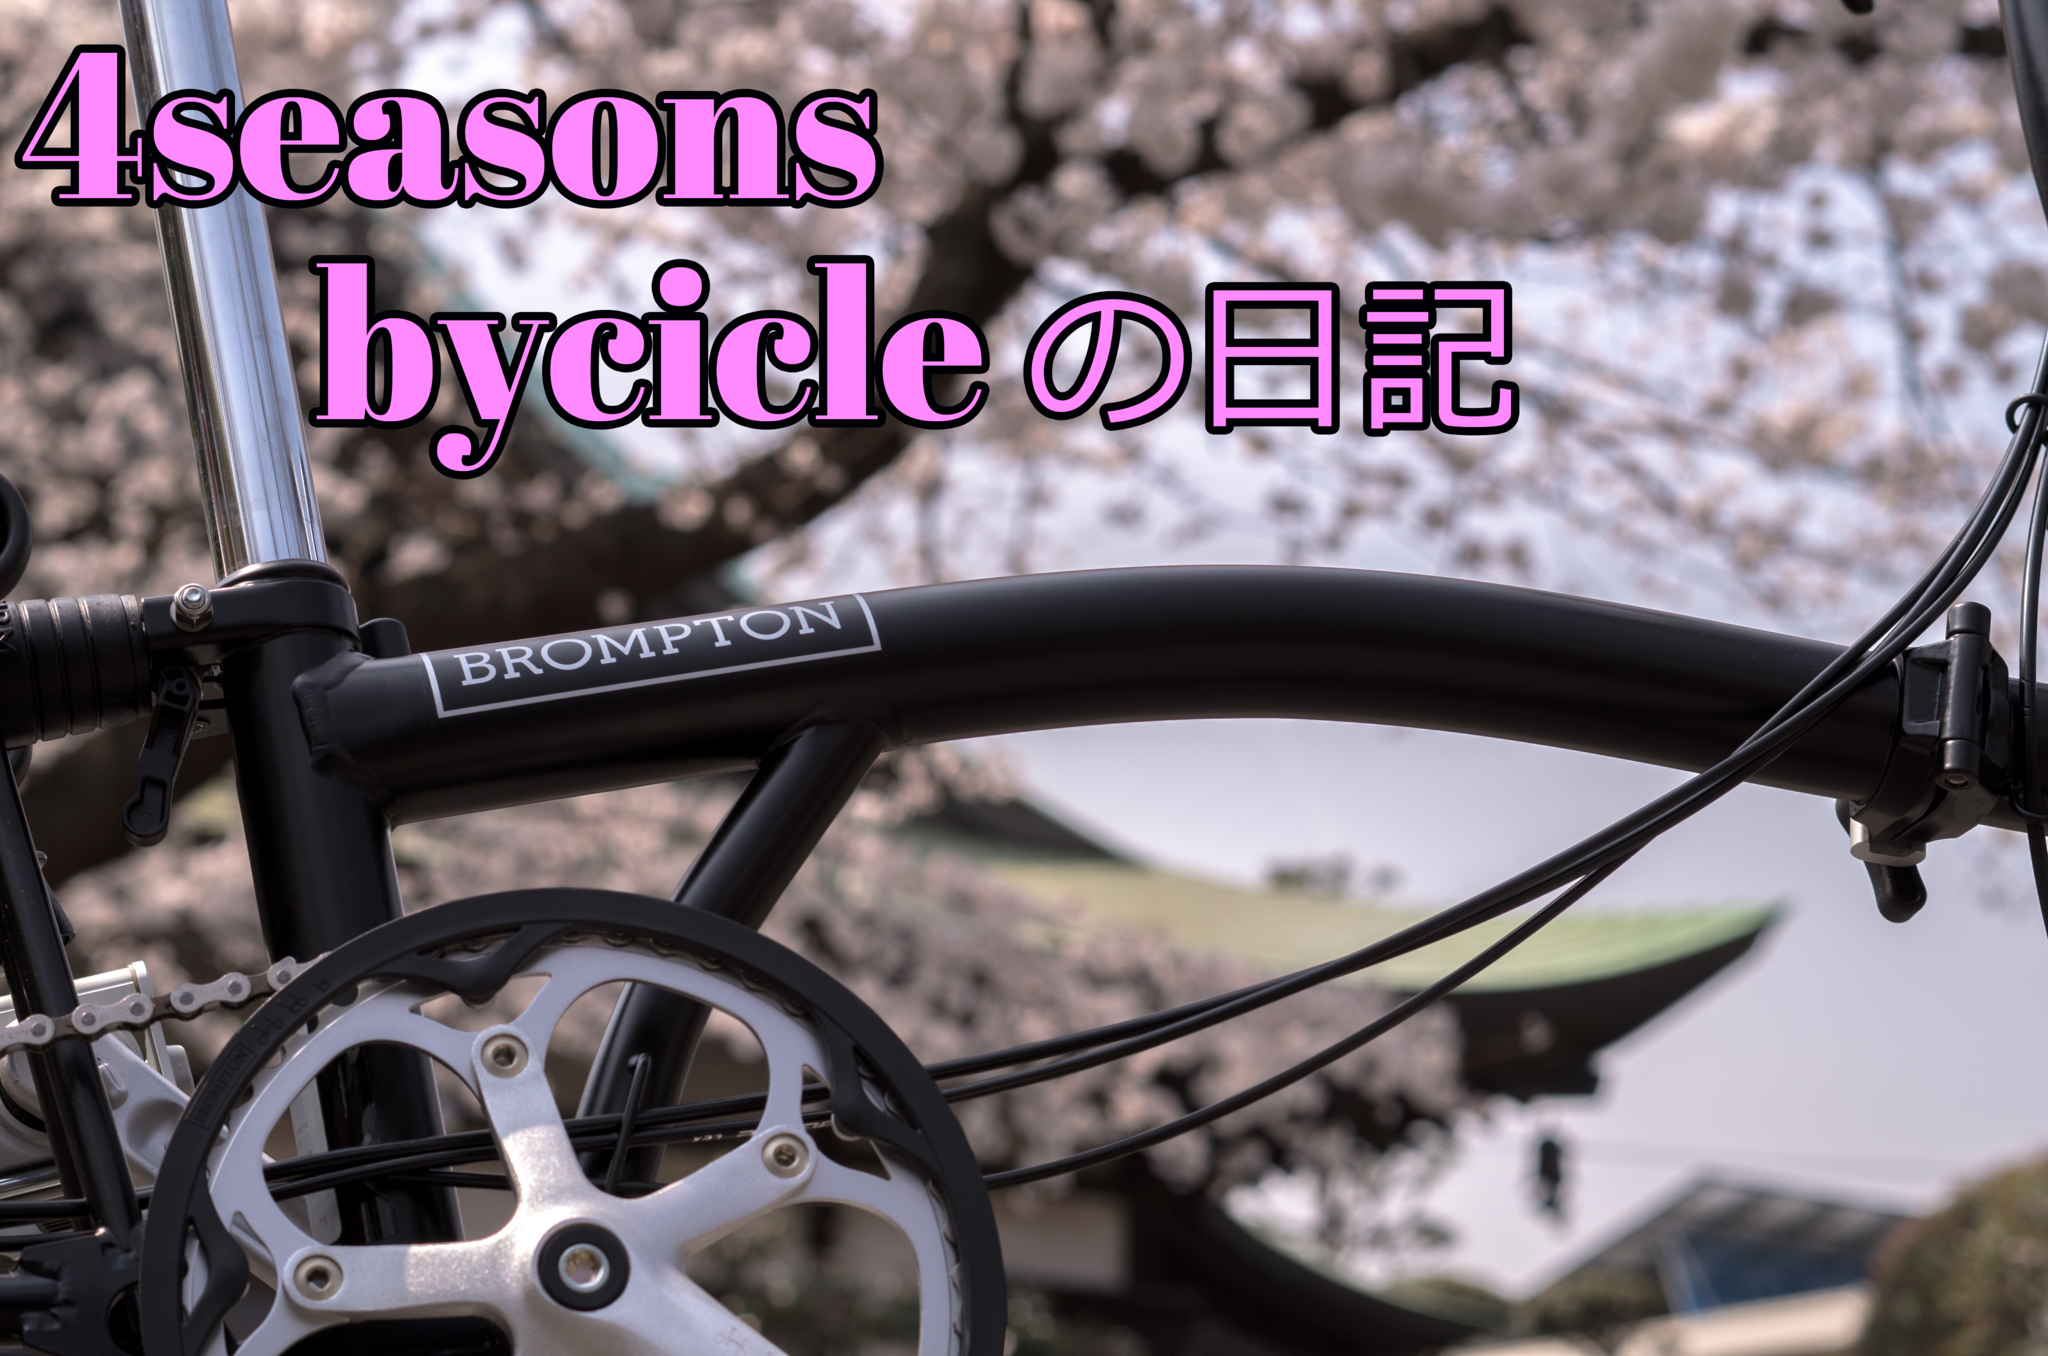 4seasonsbicycle